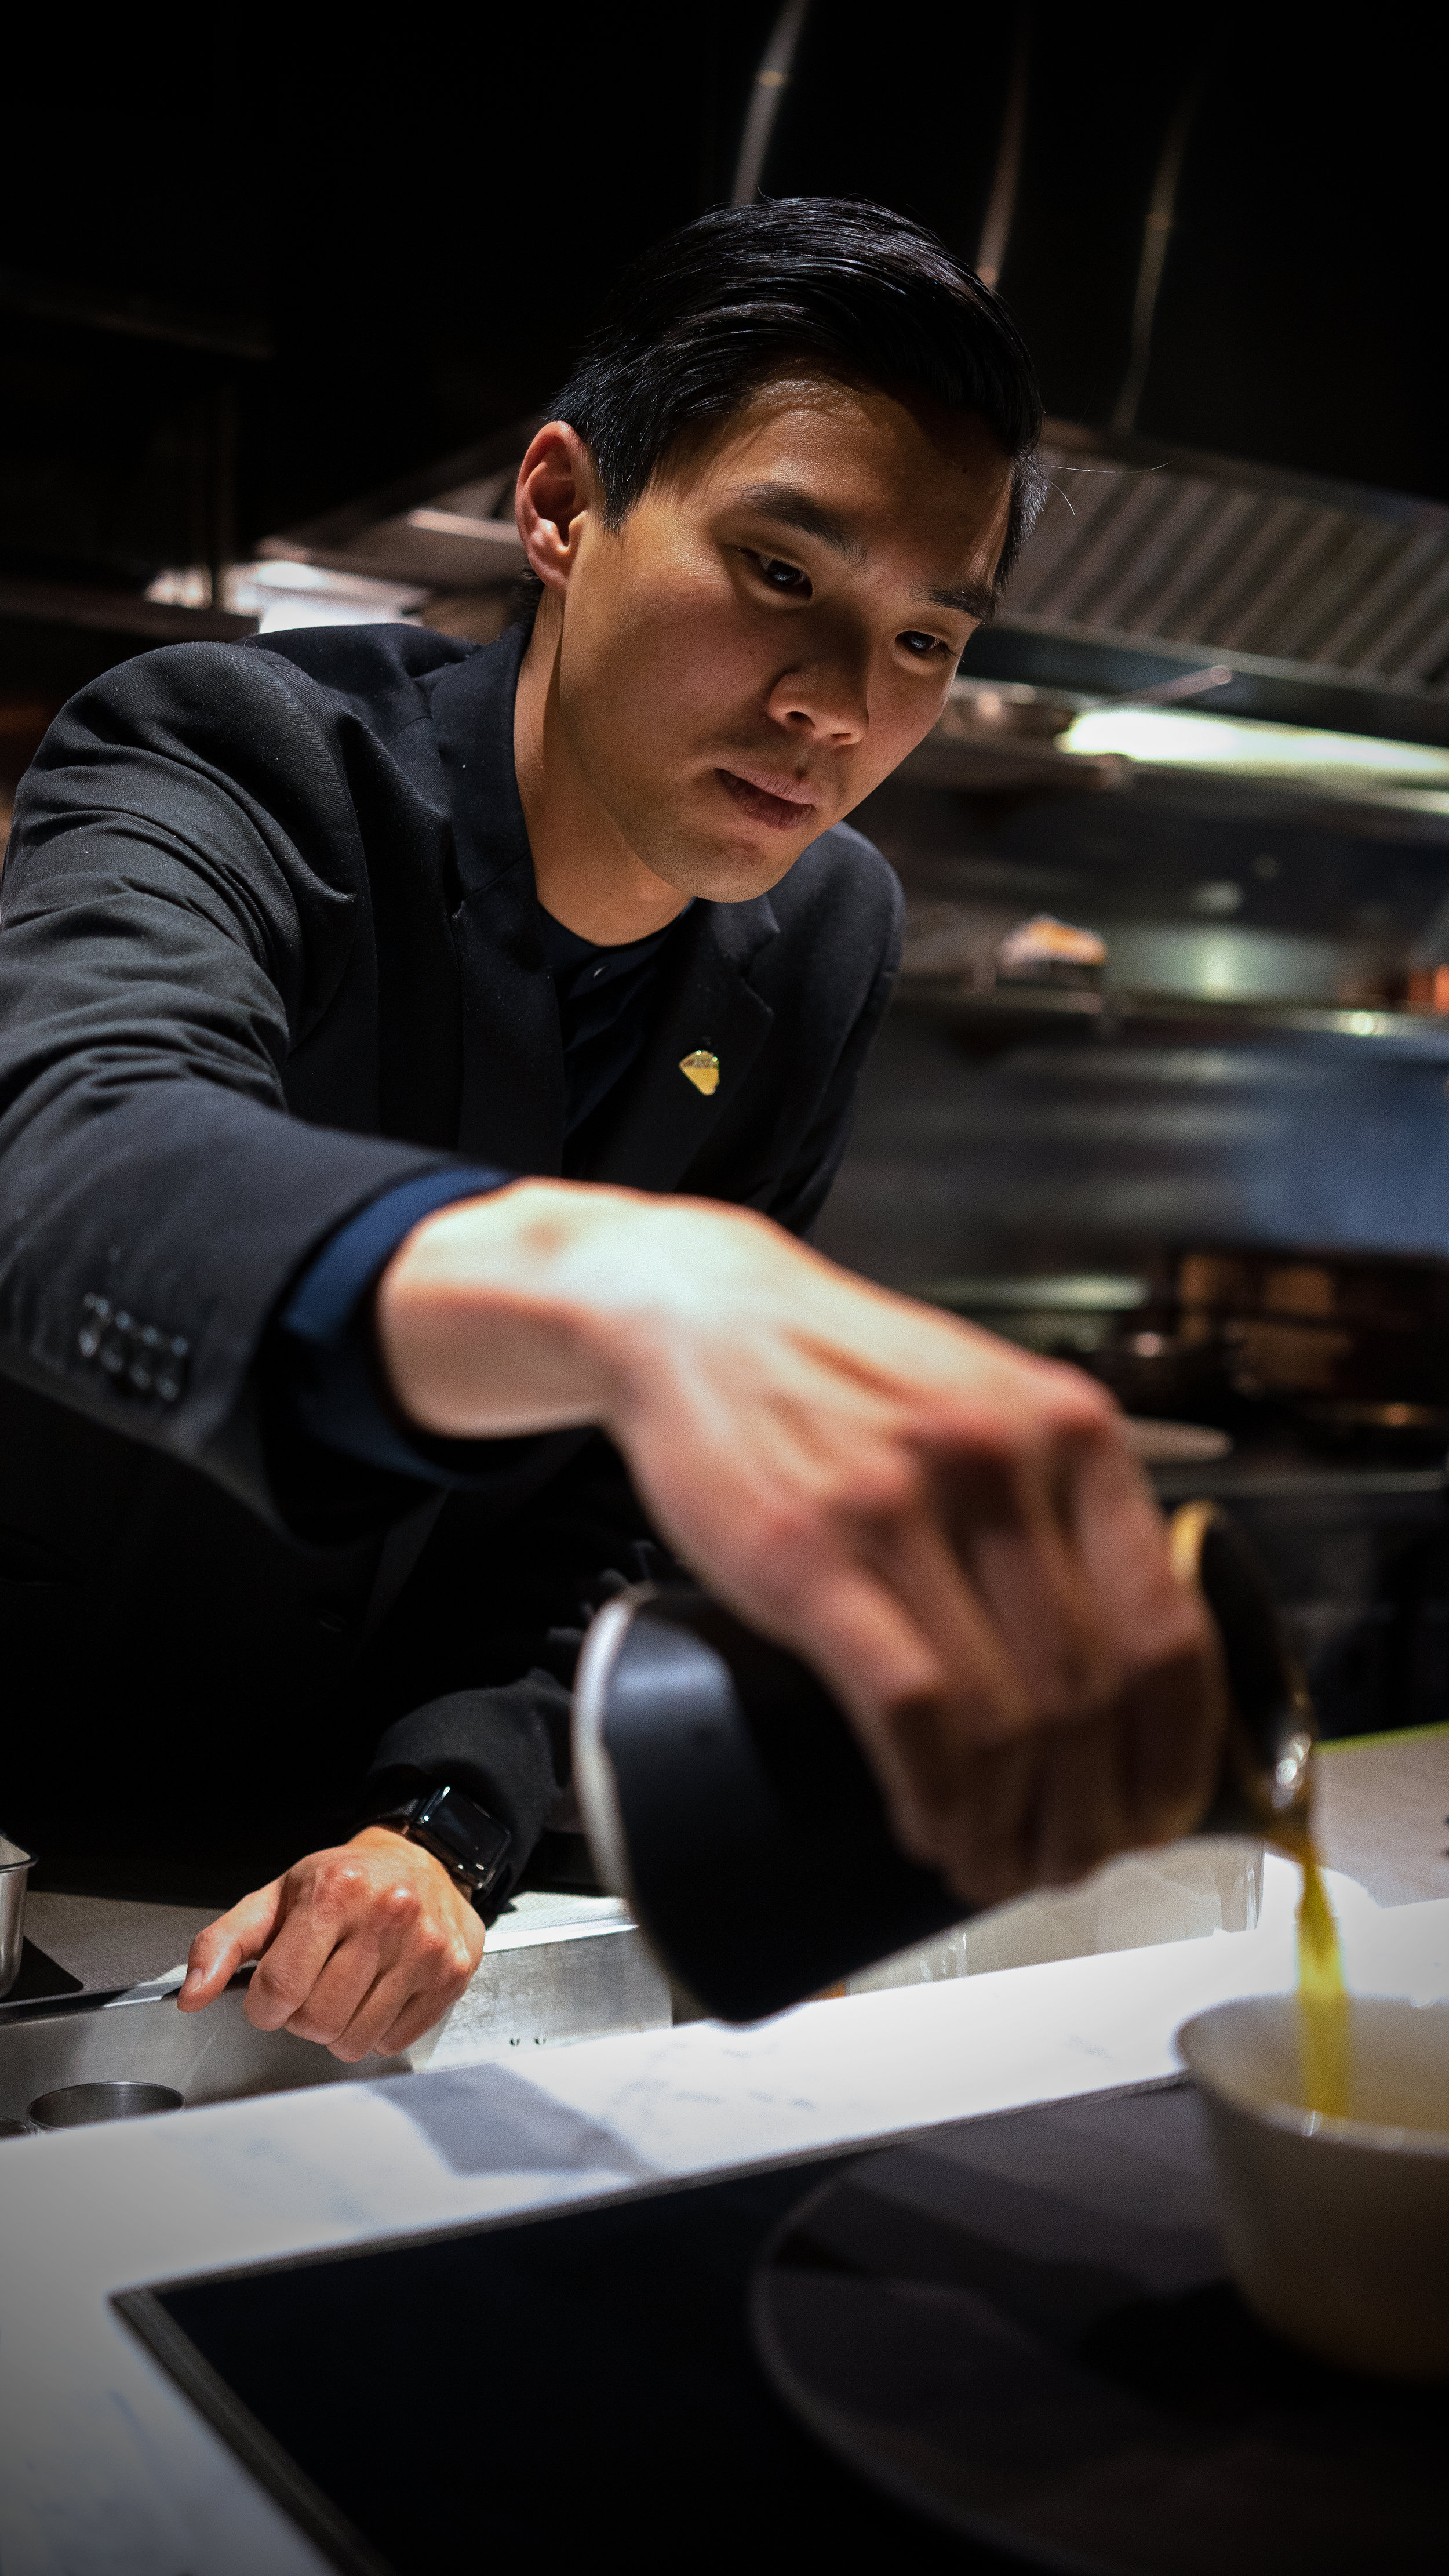 Casey Kusaka - Casey Kusaka was born and raised in Kaneohe, HI. Family gatherings are what drove his passion for food and beverage as this was always centered around food. He started his career in the kitchen which led him to the Culinary Institute of America in New York where he refined his cooking skills. Casey then worked his way up the ranks at the Momofuku Noodle bar for several years and fulfilled his need for cooking experience in New York. He then transitioned to the service side of the industry working at the highly renowned one-Michelin starred Lincoln Ristorante. Ultimately Casey returned back to the Momofuku food group as a captain at their two-Michelin star Momofuku Ko. Now the General Manager at the two Michelin star Californios in San Francisco. With the opening of this restaurant he wants something that truly speaks to his personal experience and able to share it with his guests.